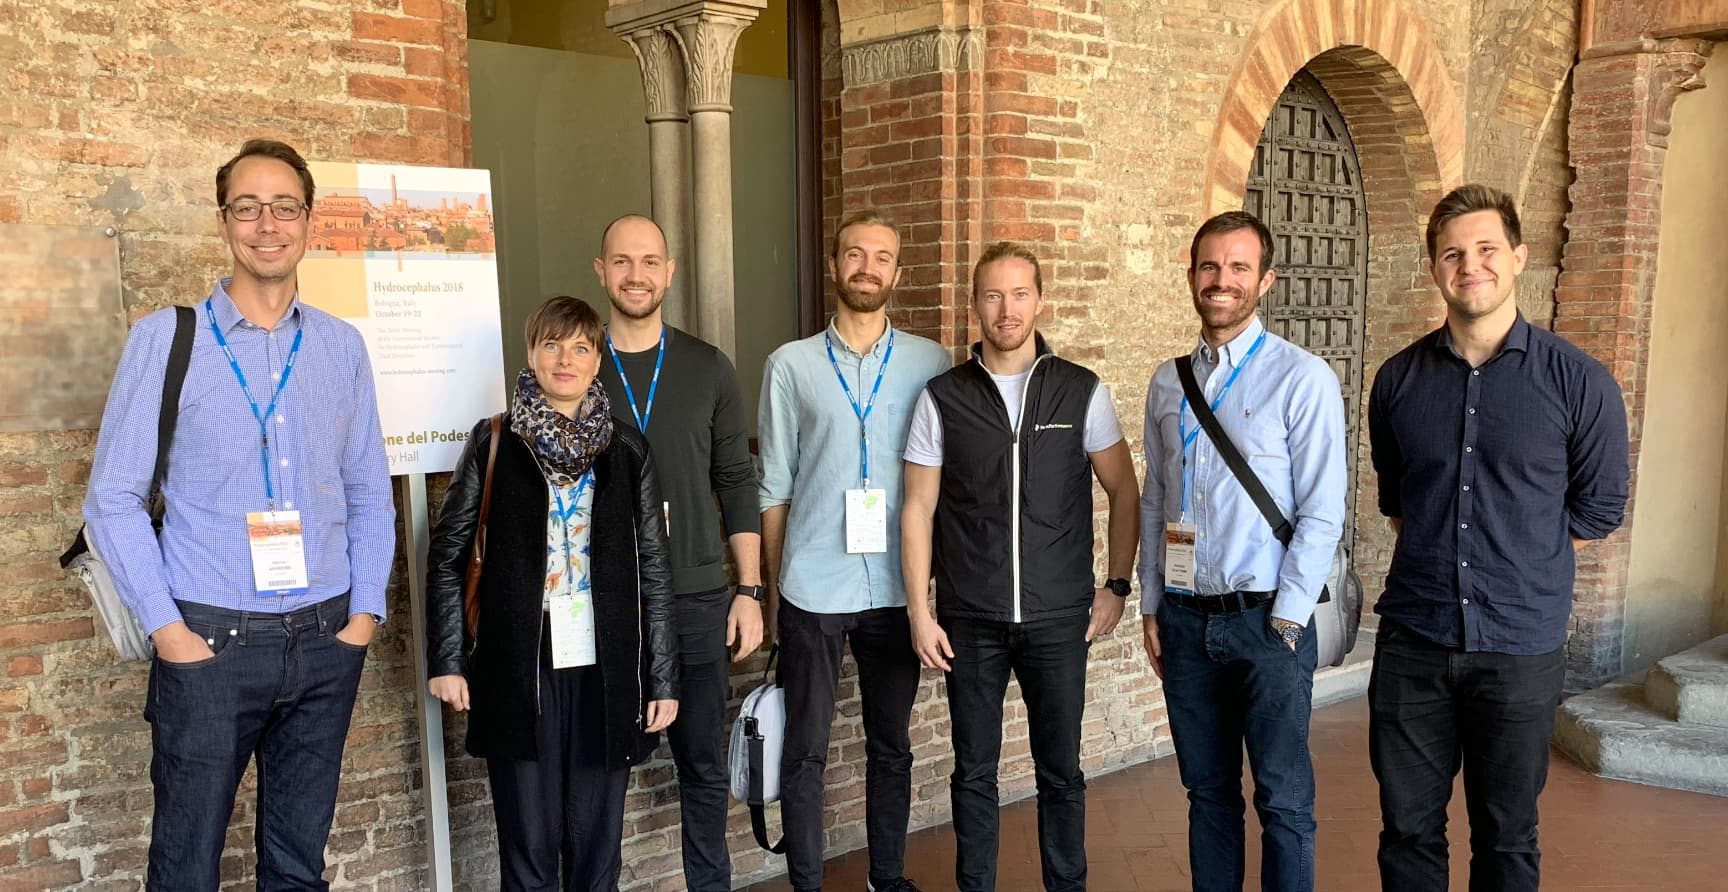 The group at ISHCSF 2018.